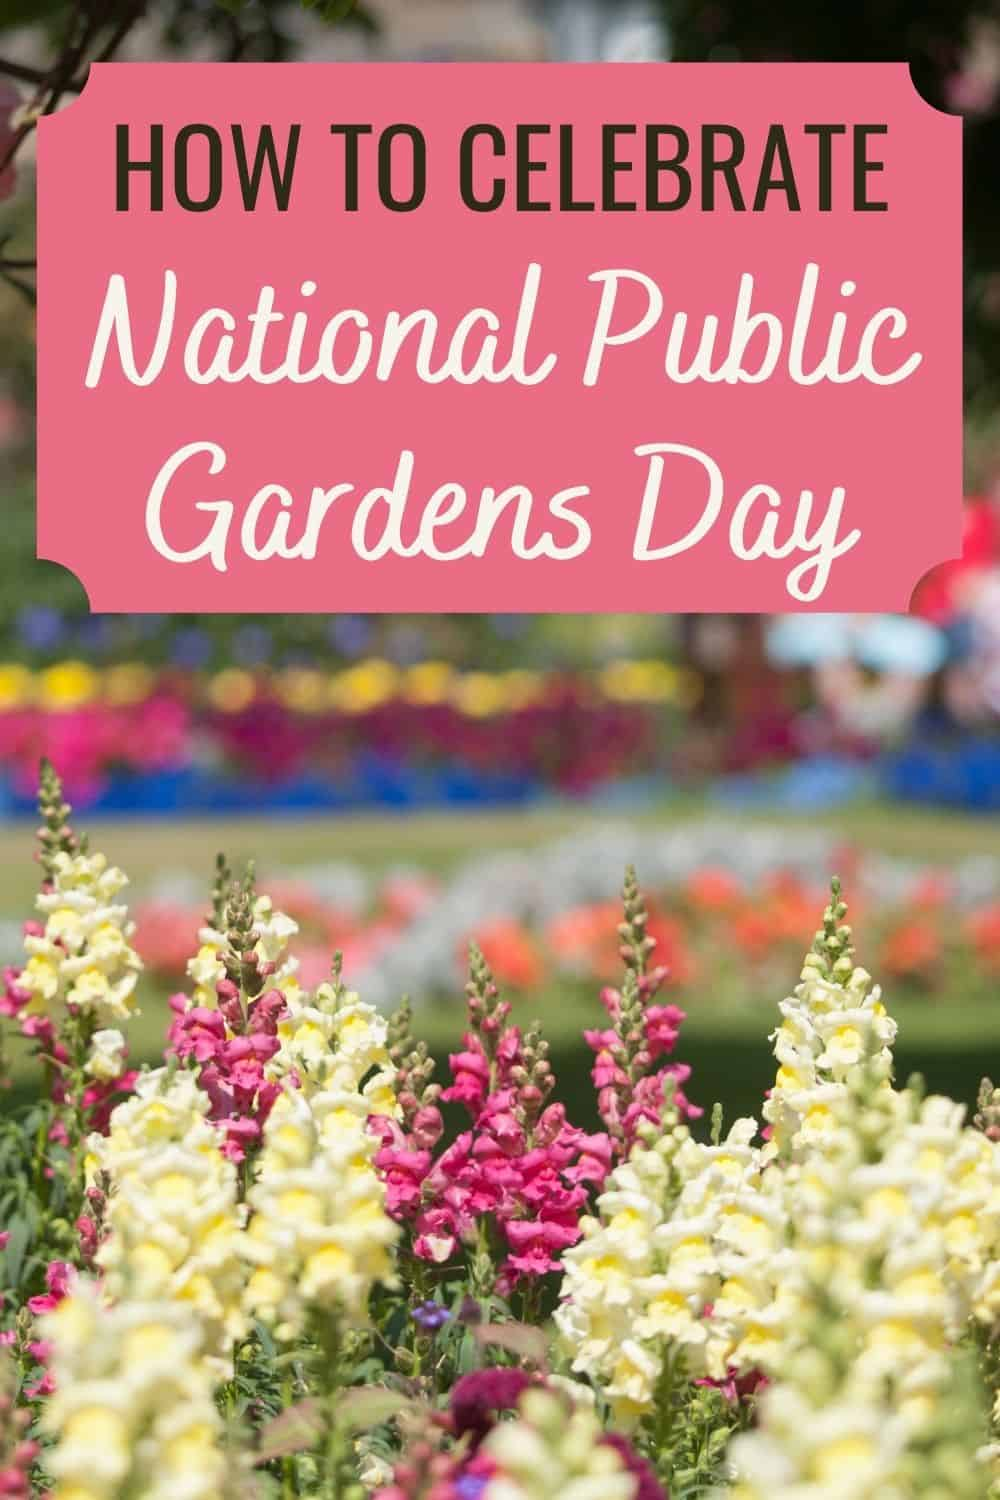 How to celebrate National Public Gardens Day